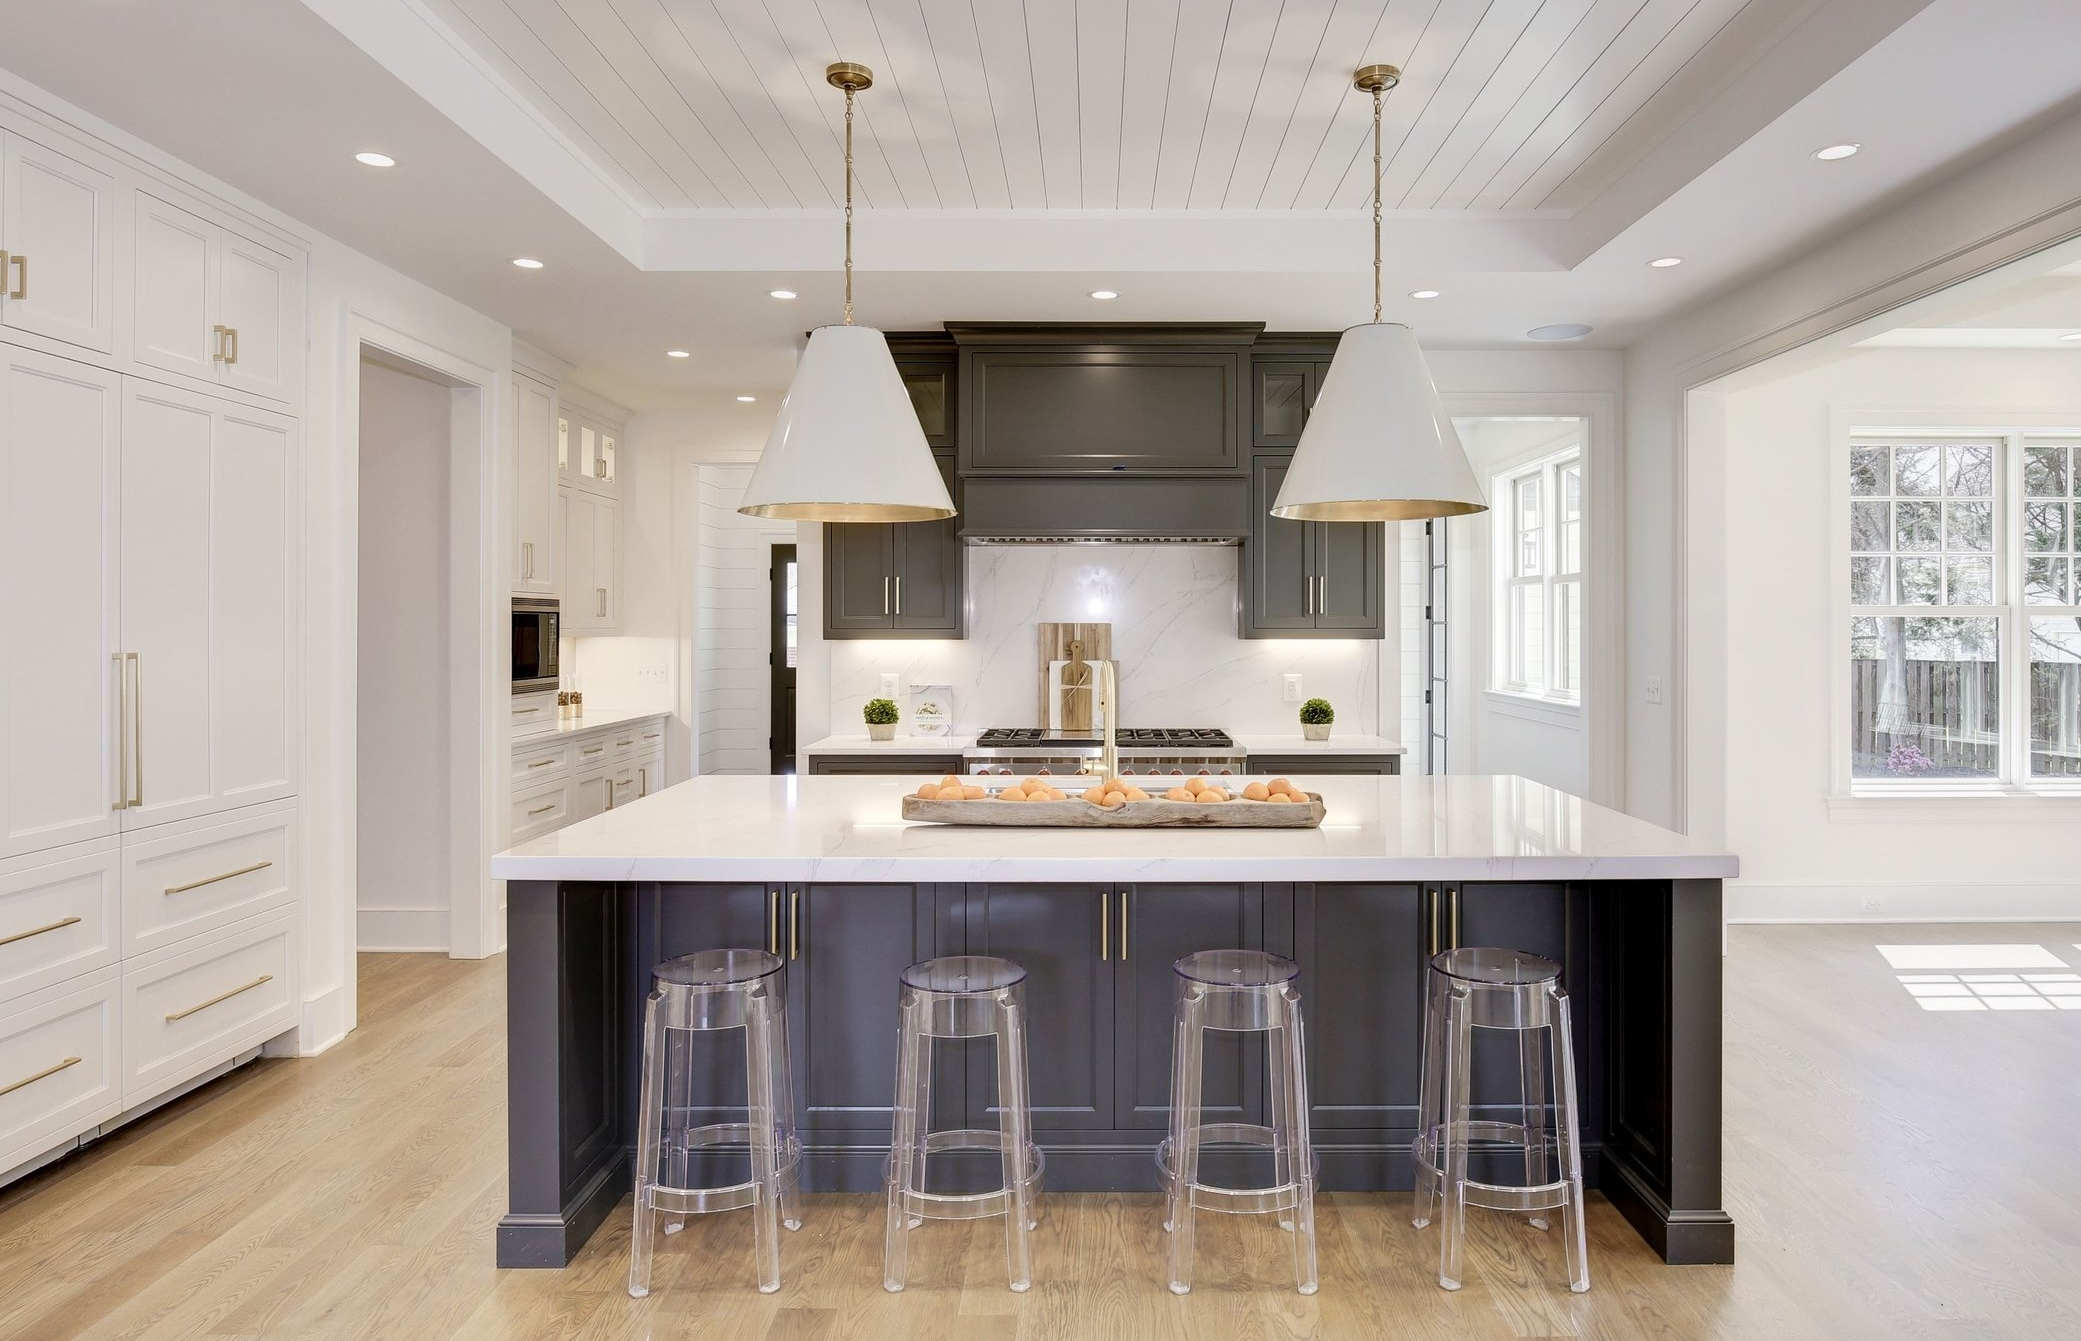 GREATJONES-RAYMOND-KITCHEN-1.jpg